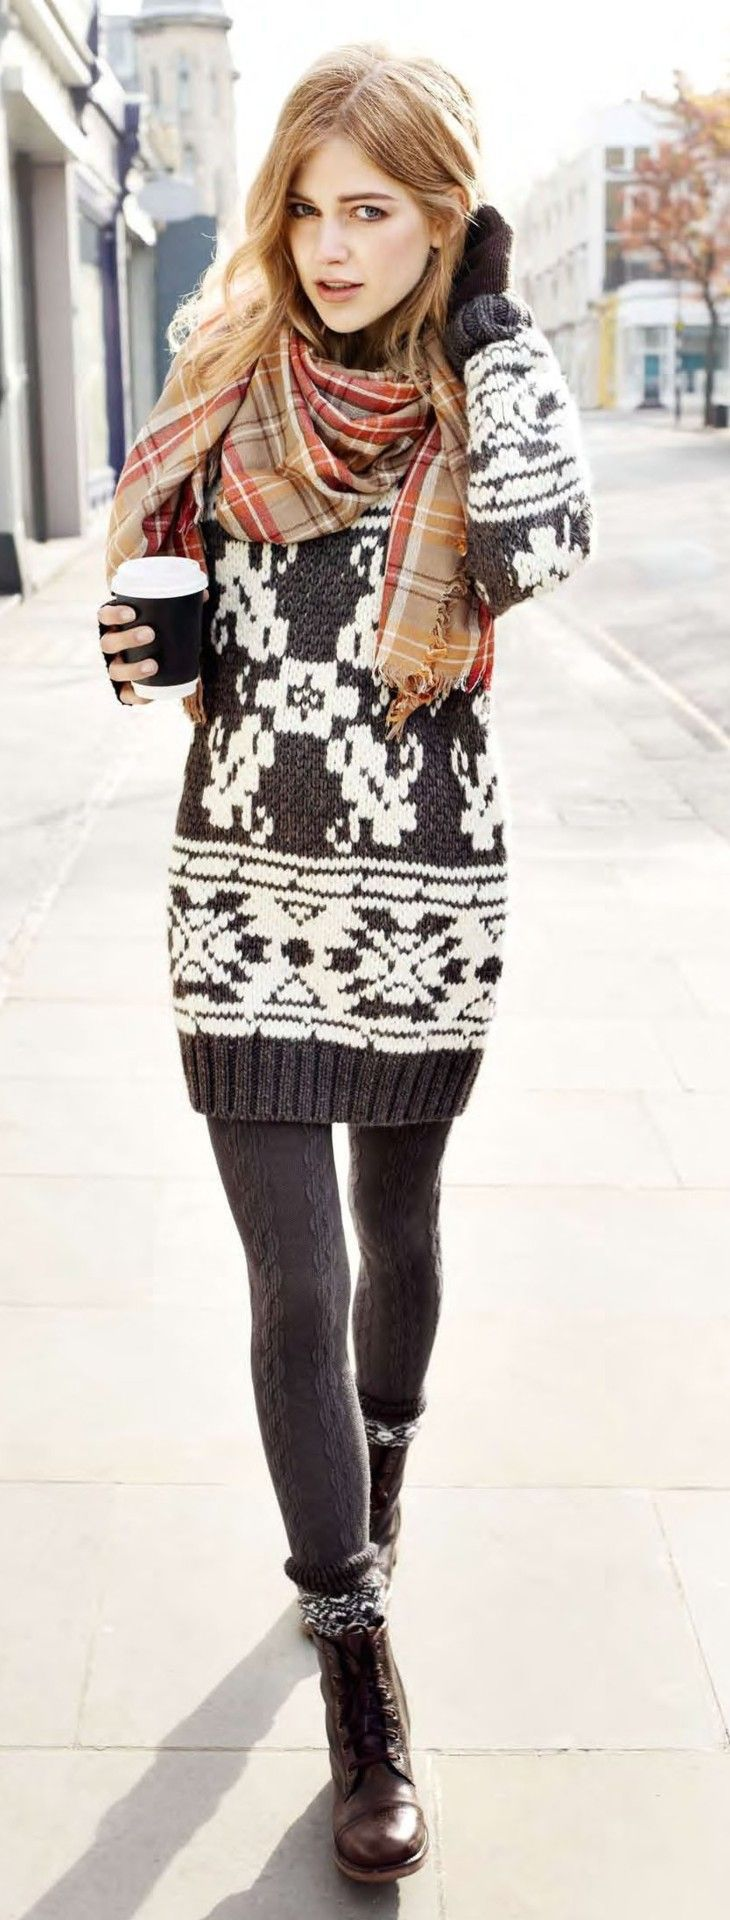 Love the sweater length & fit and would love tights like that